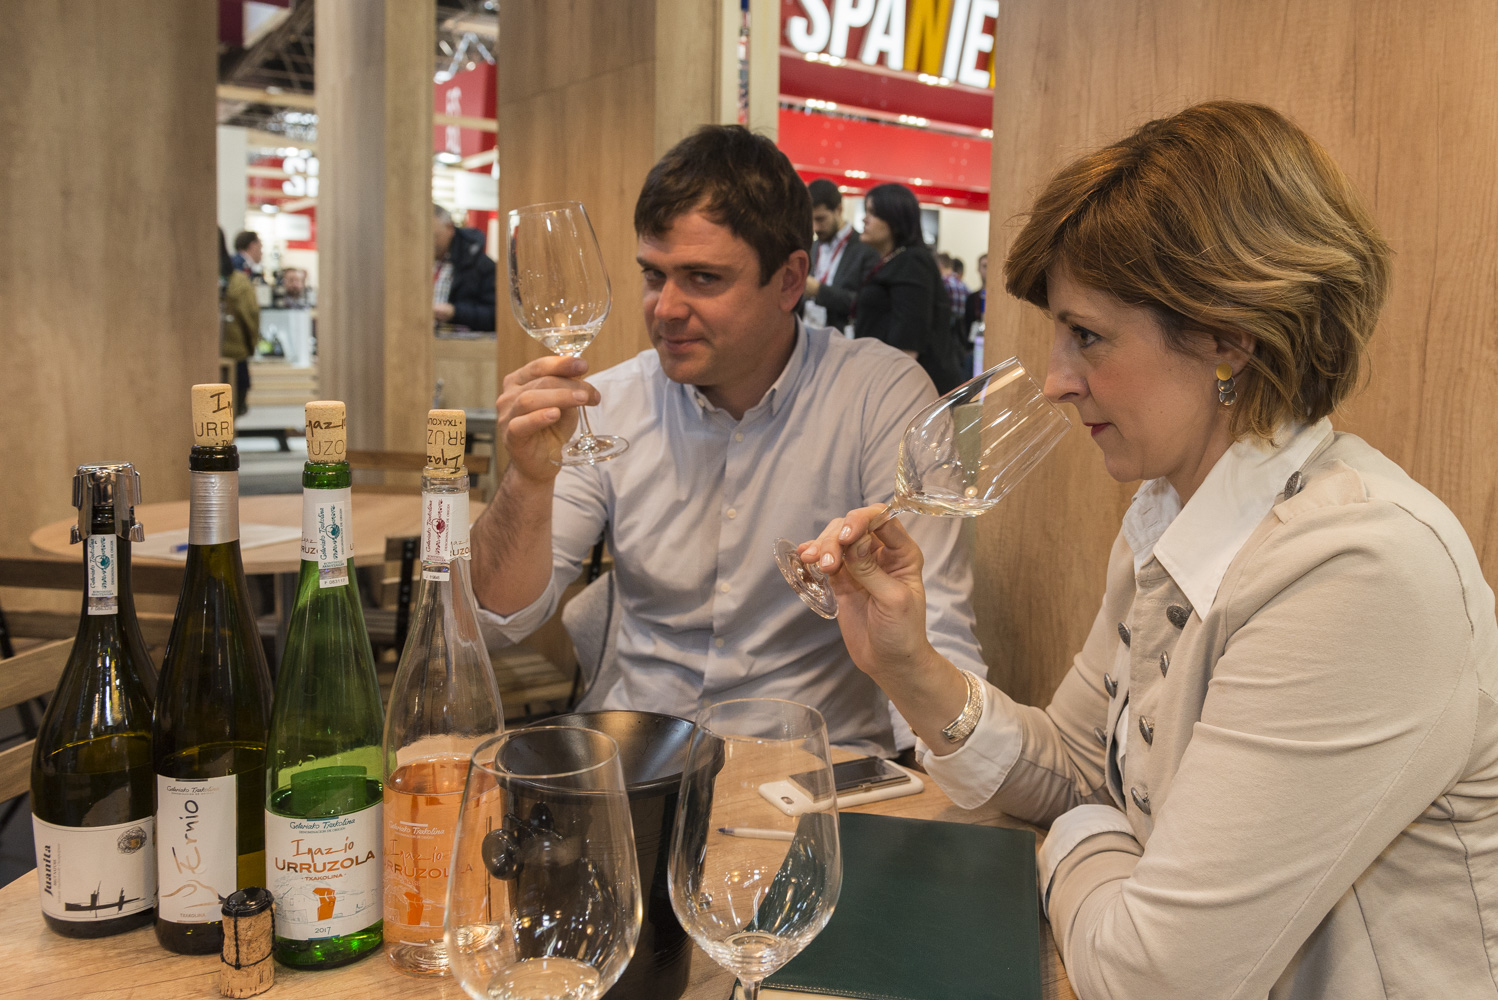 prowein_stand_euskadi_basque_country_19.jpg